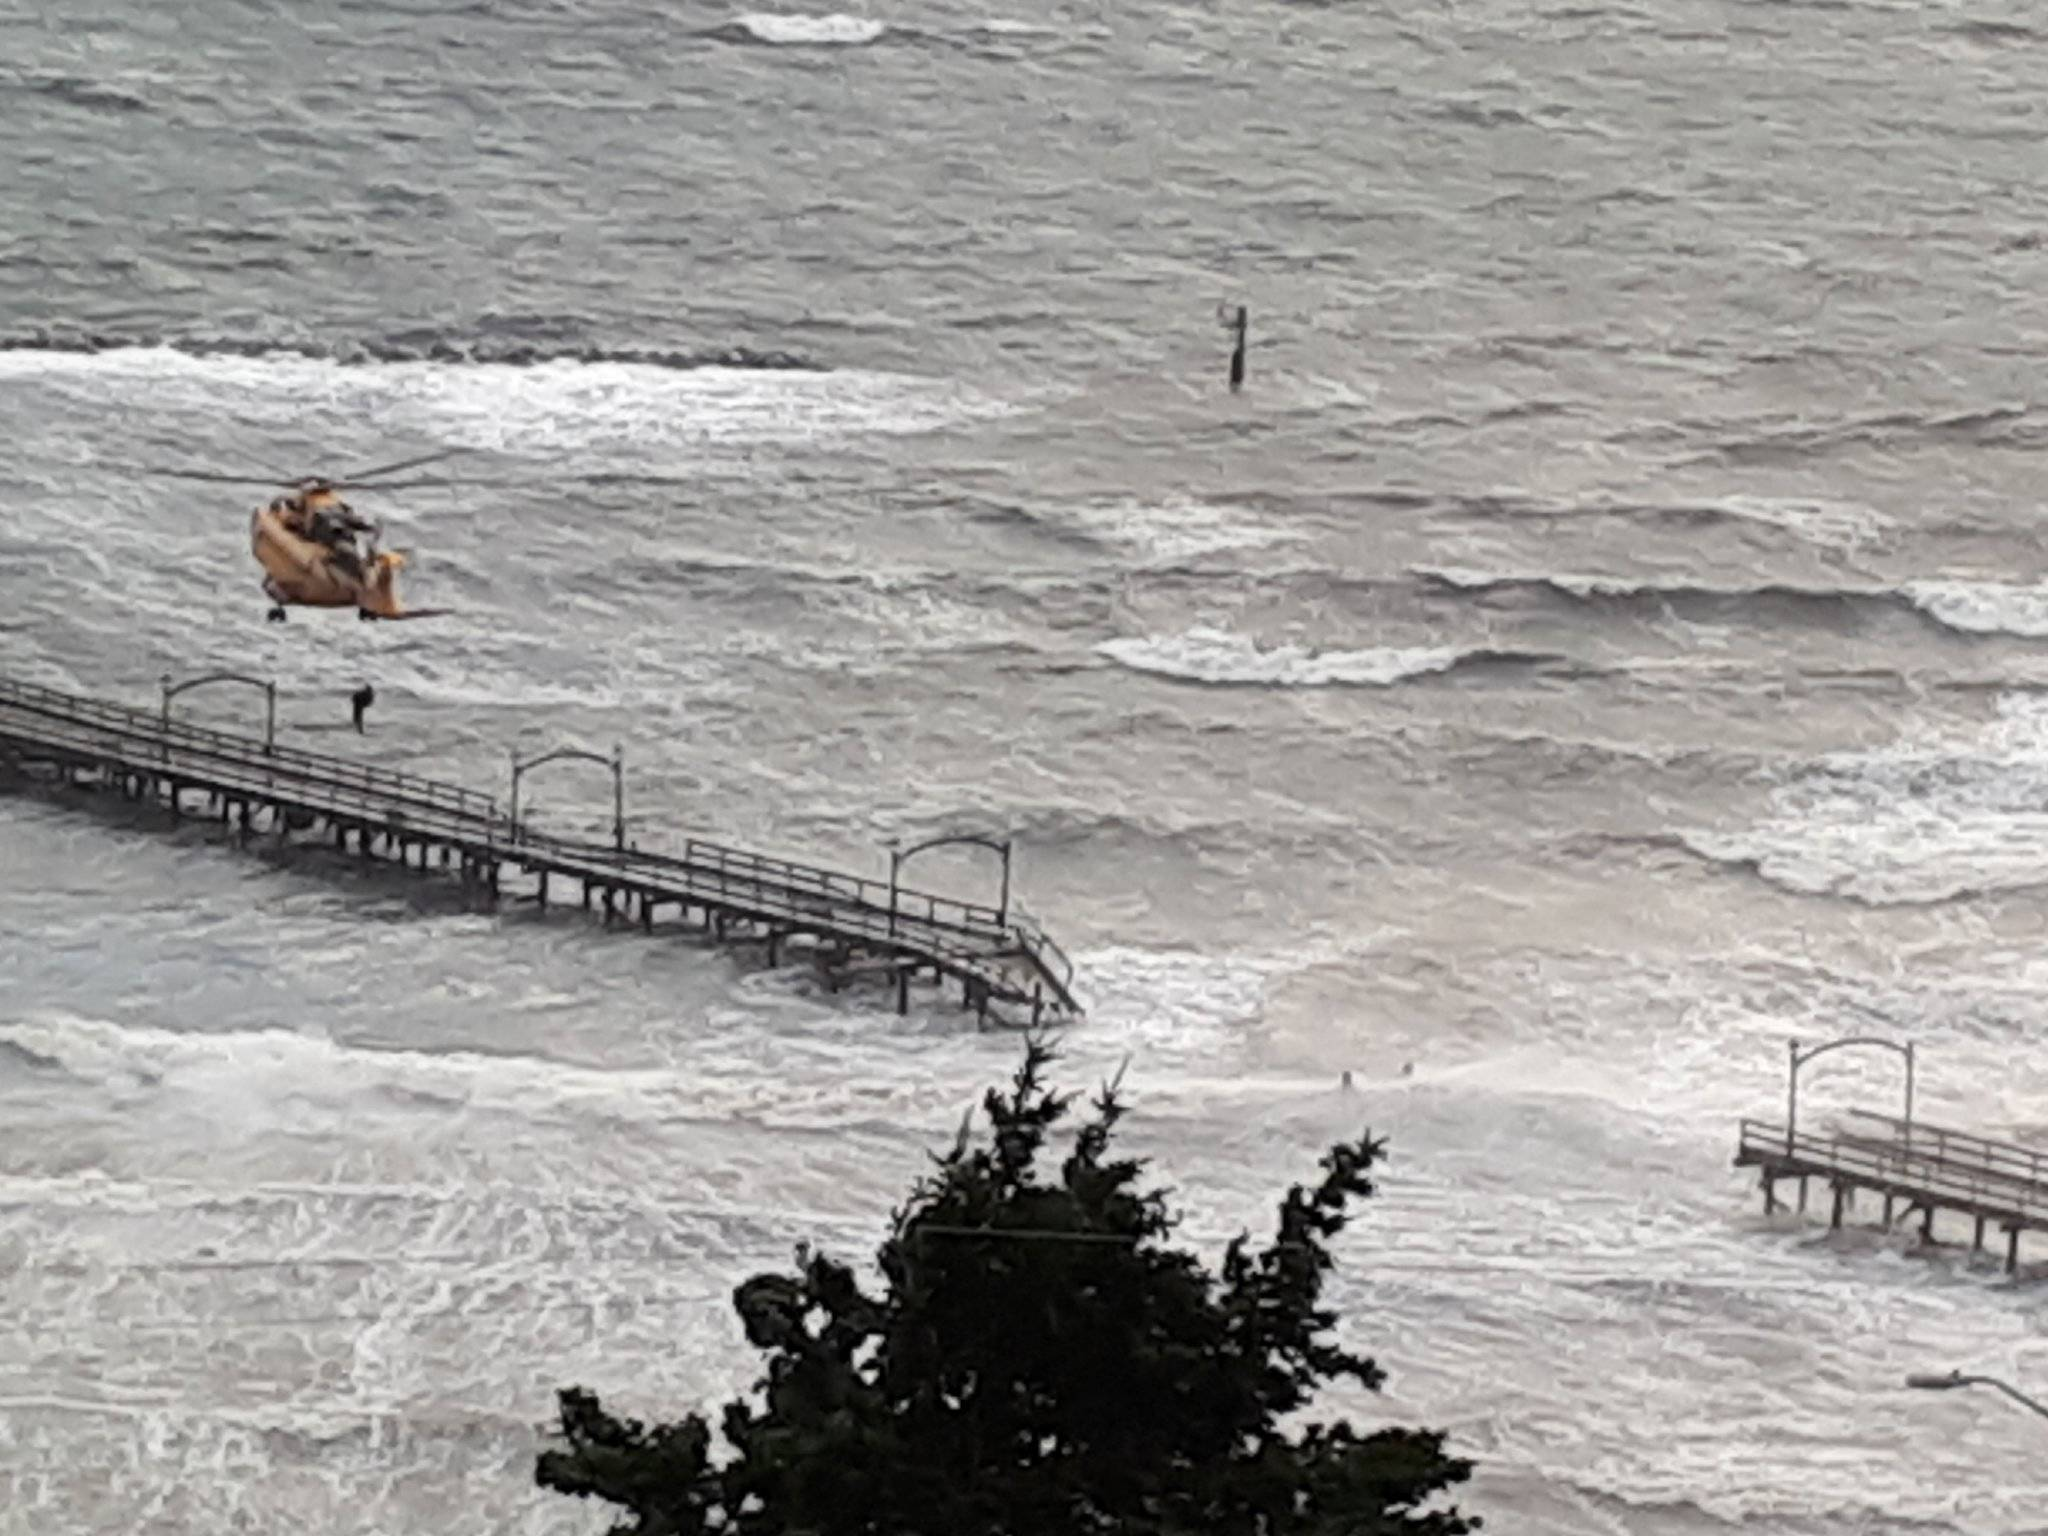 Search and Rescue working to grab the person trapped on the end of the pier. (Sheila LaRose/Twitter)